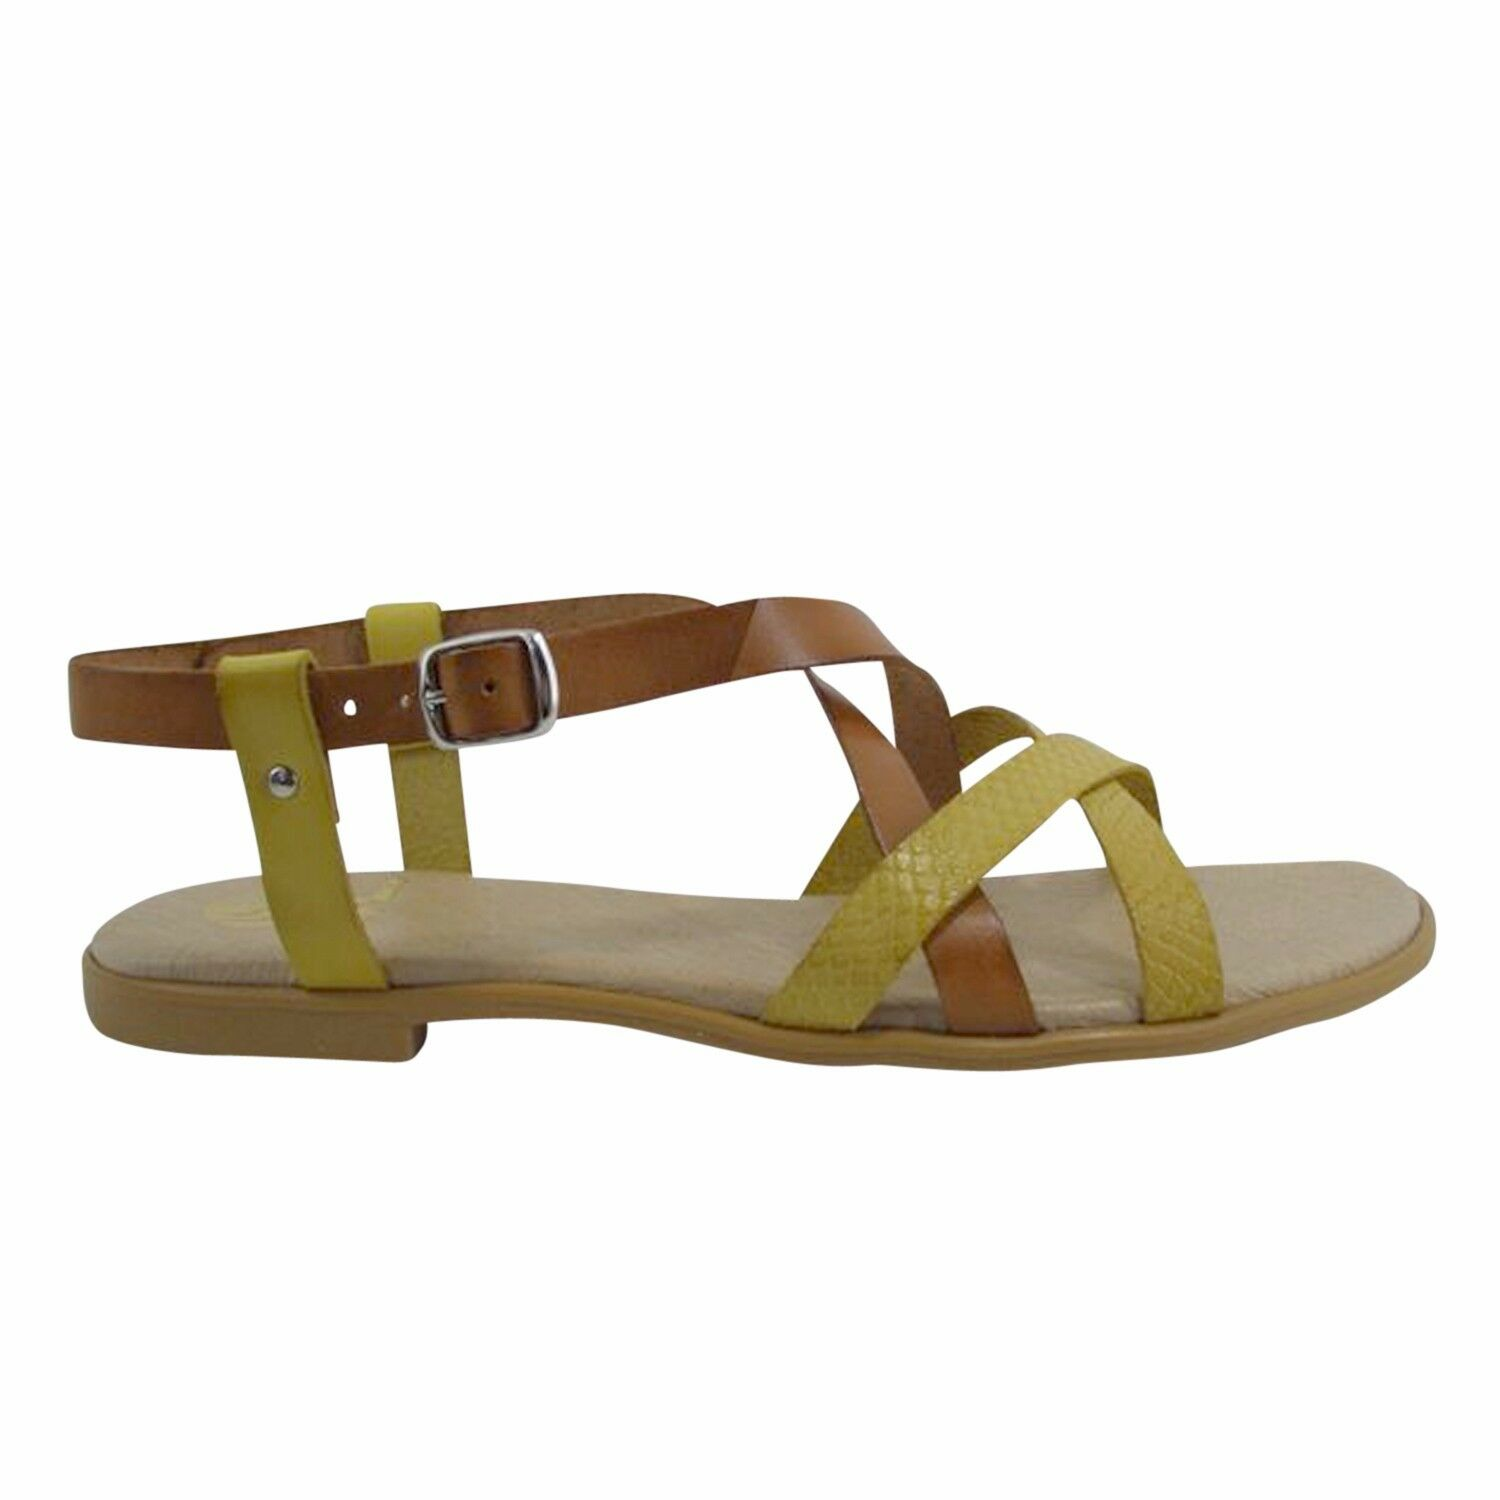 Größe 11 9) (EU 43 / UK 9) 11 Braun & Yellow Strappy Flat Sandales Made in Spain 0347dc